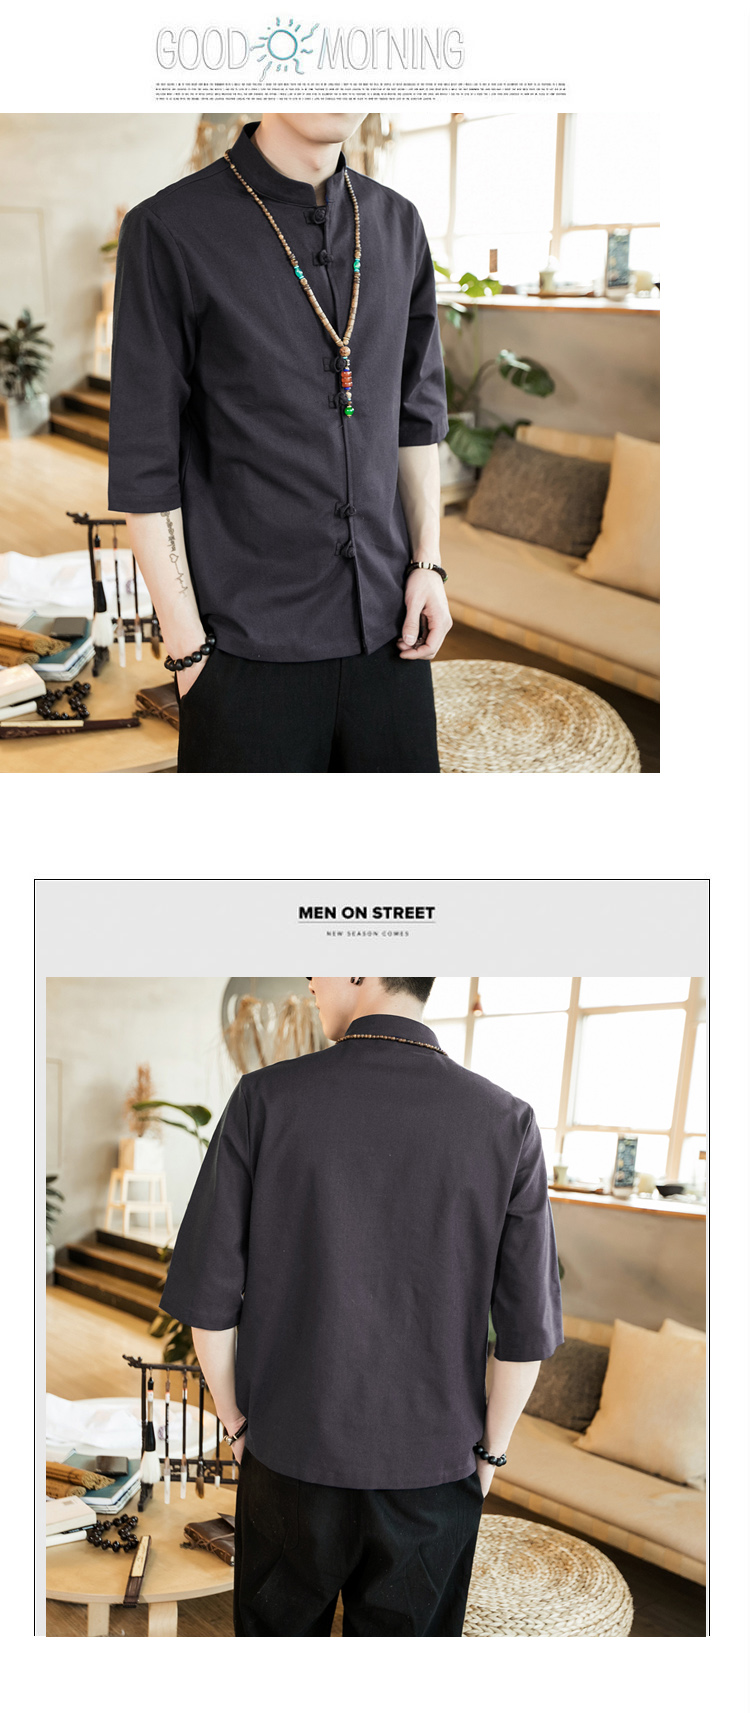 Chinese style summer fashion man's Pure color linen Short sleeve shirt high-grade male comfortable slim fit leisure shirt M-5XL 56